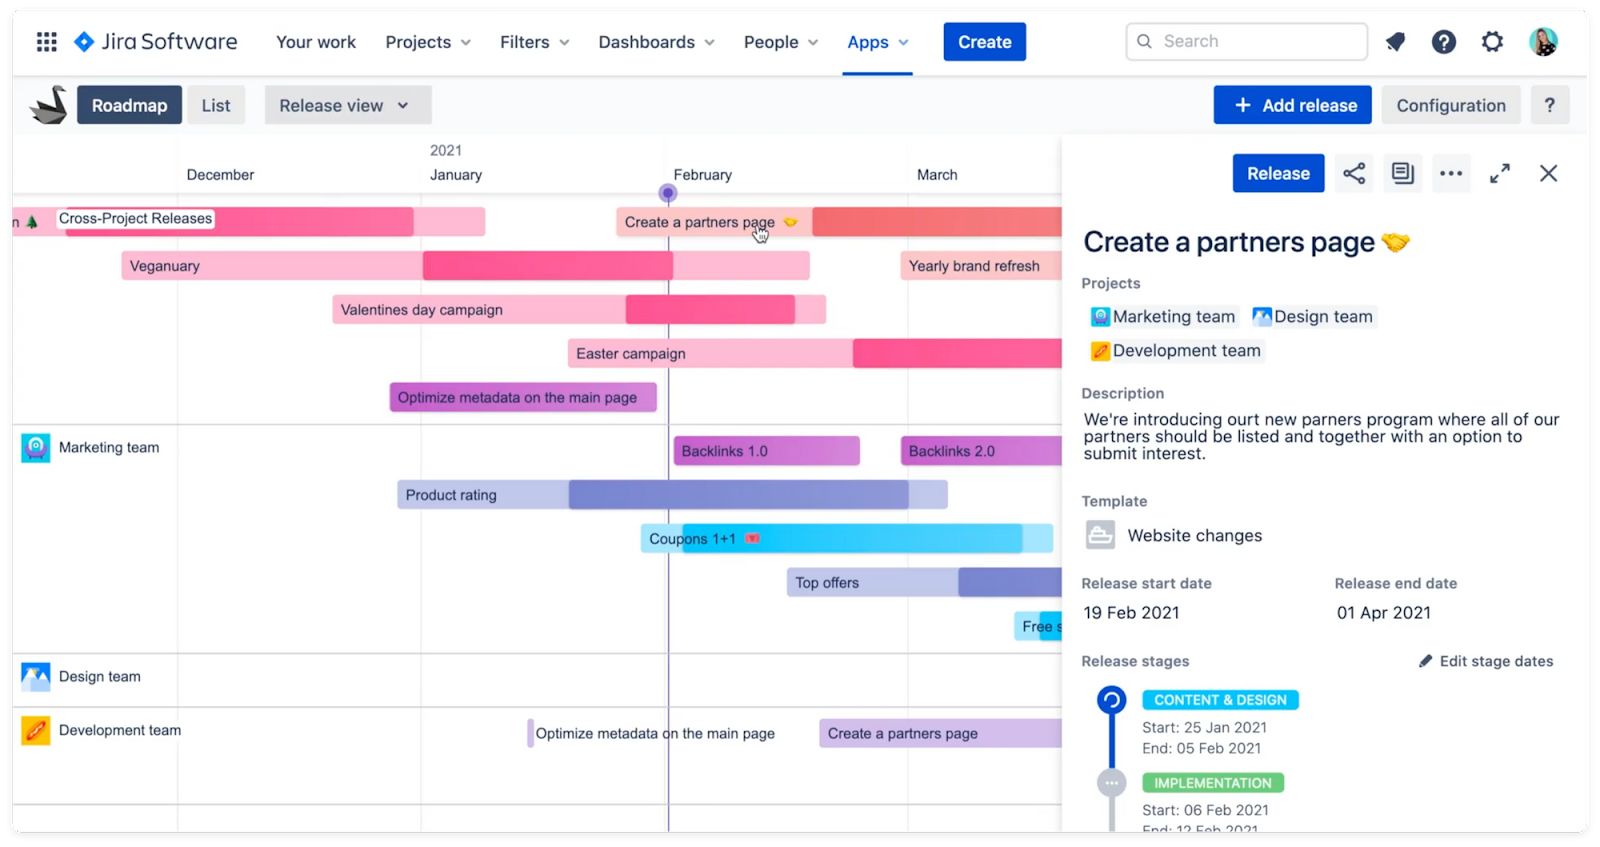 Swanly project management for Jira - report panel from right